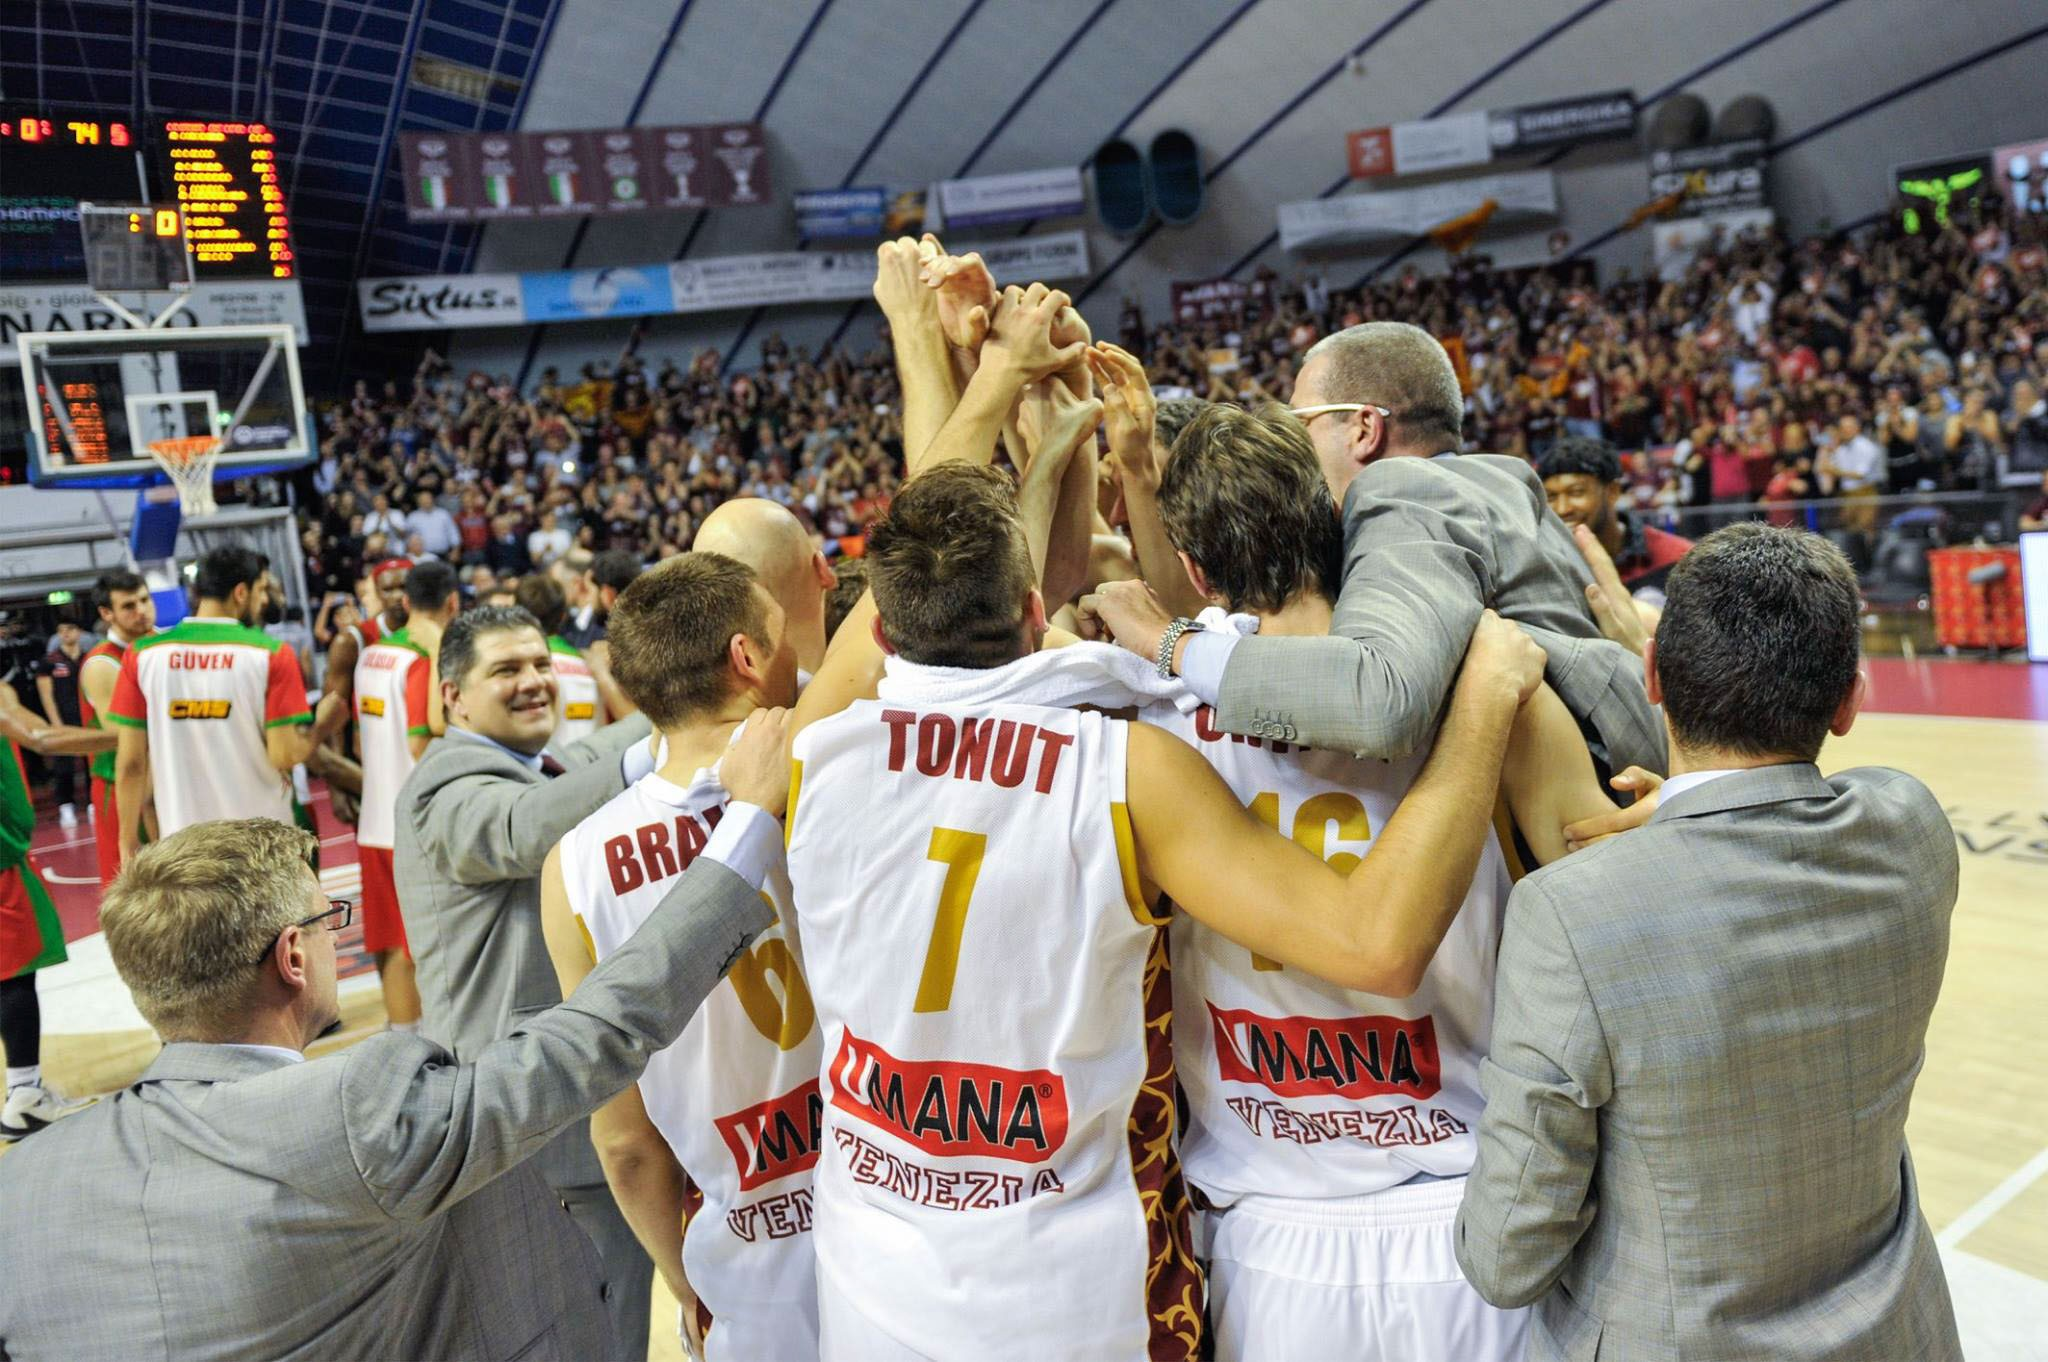 The historic Reyer Venezia team lands in the Final Four of the Champions League!